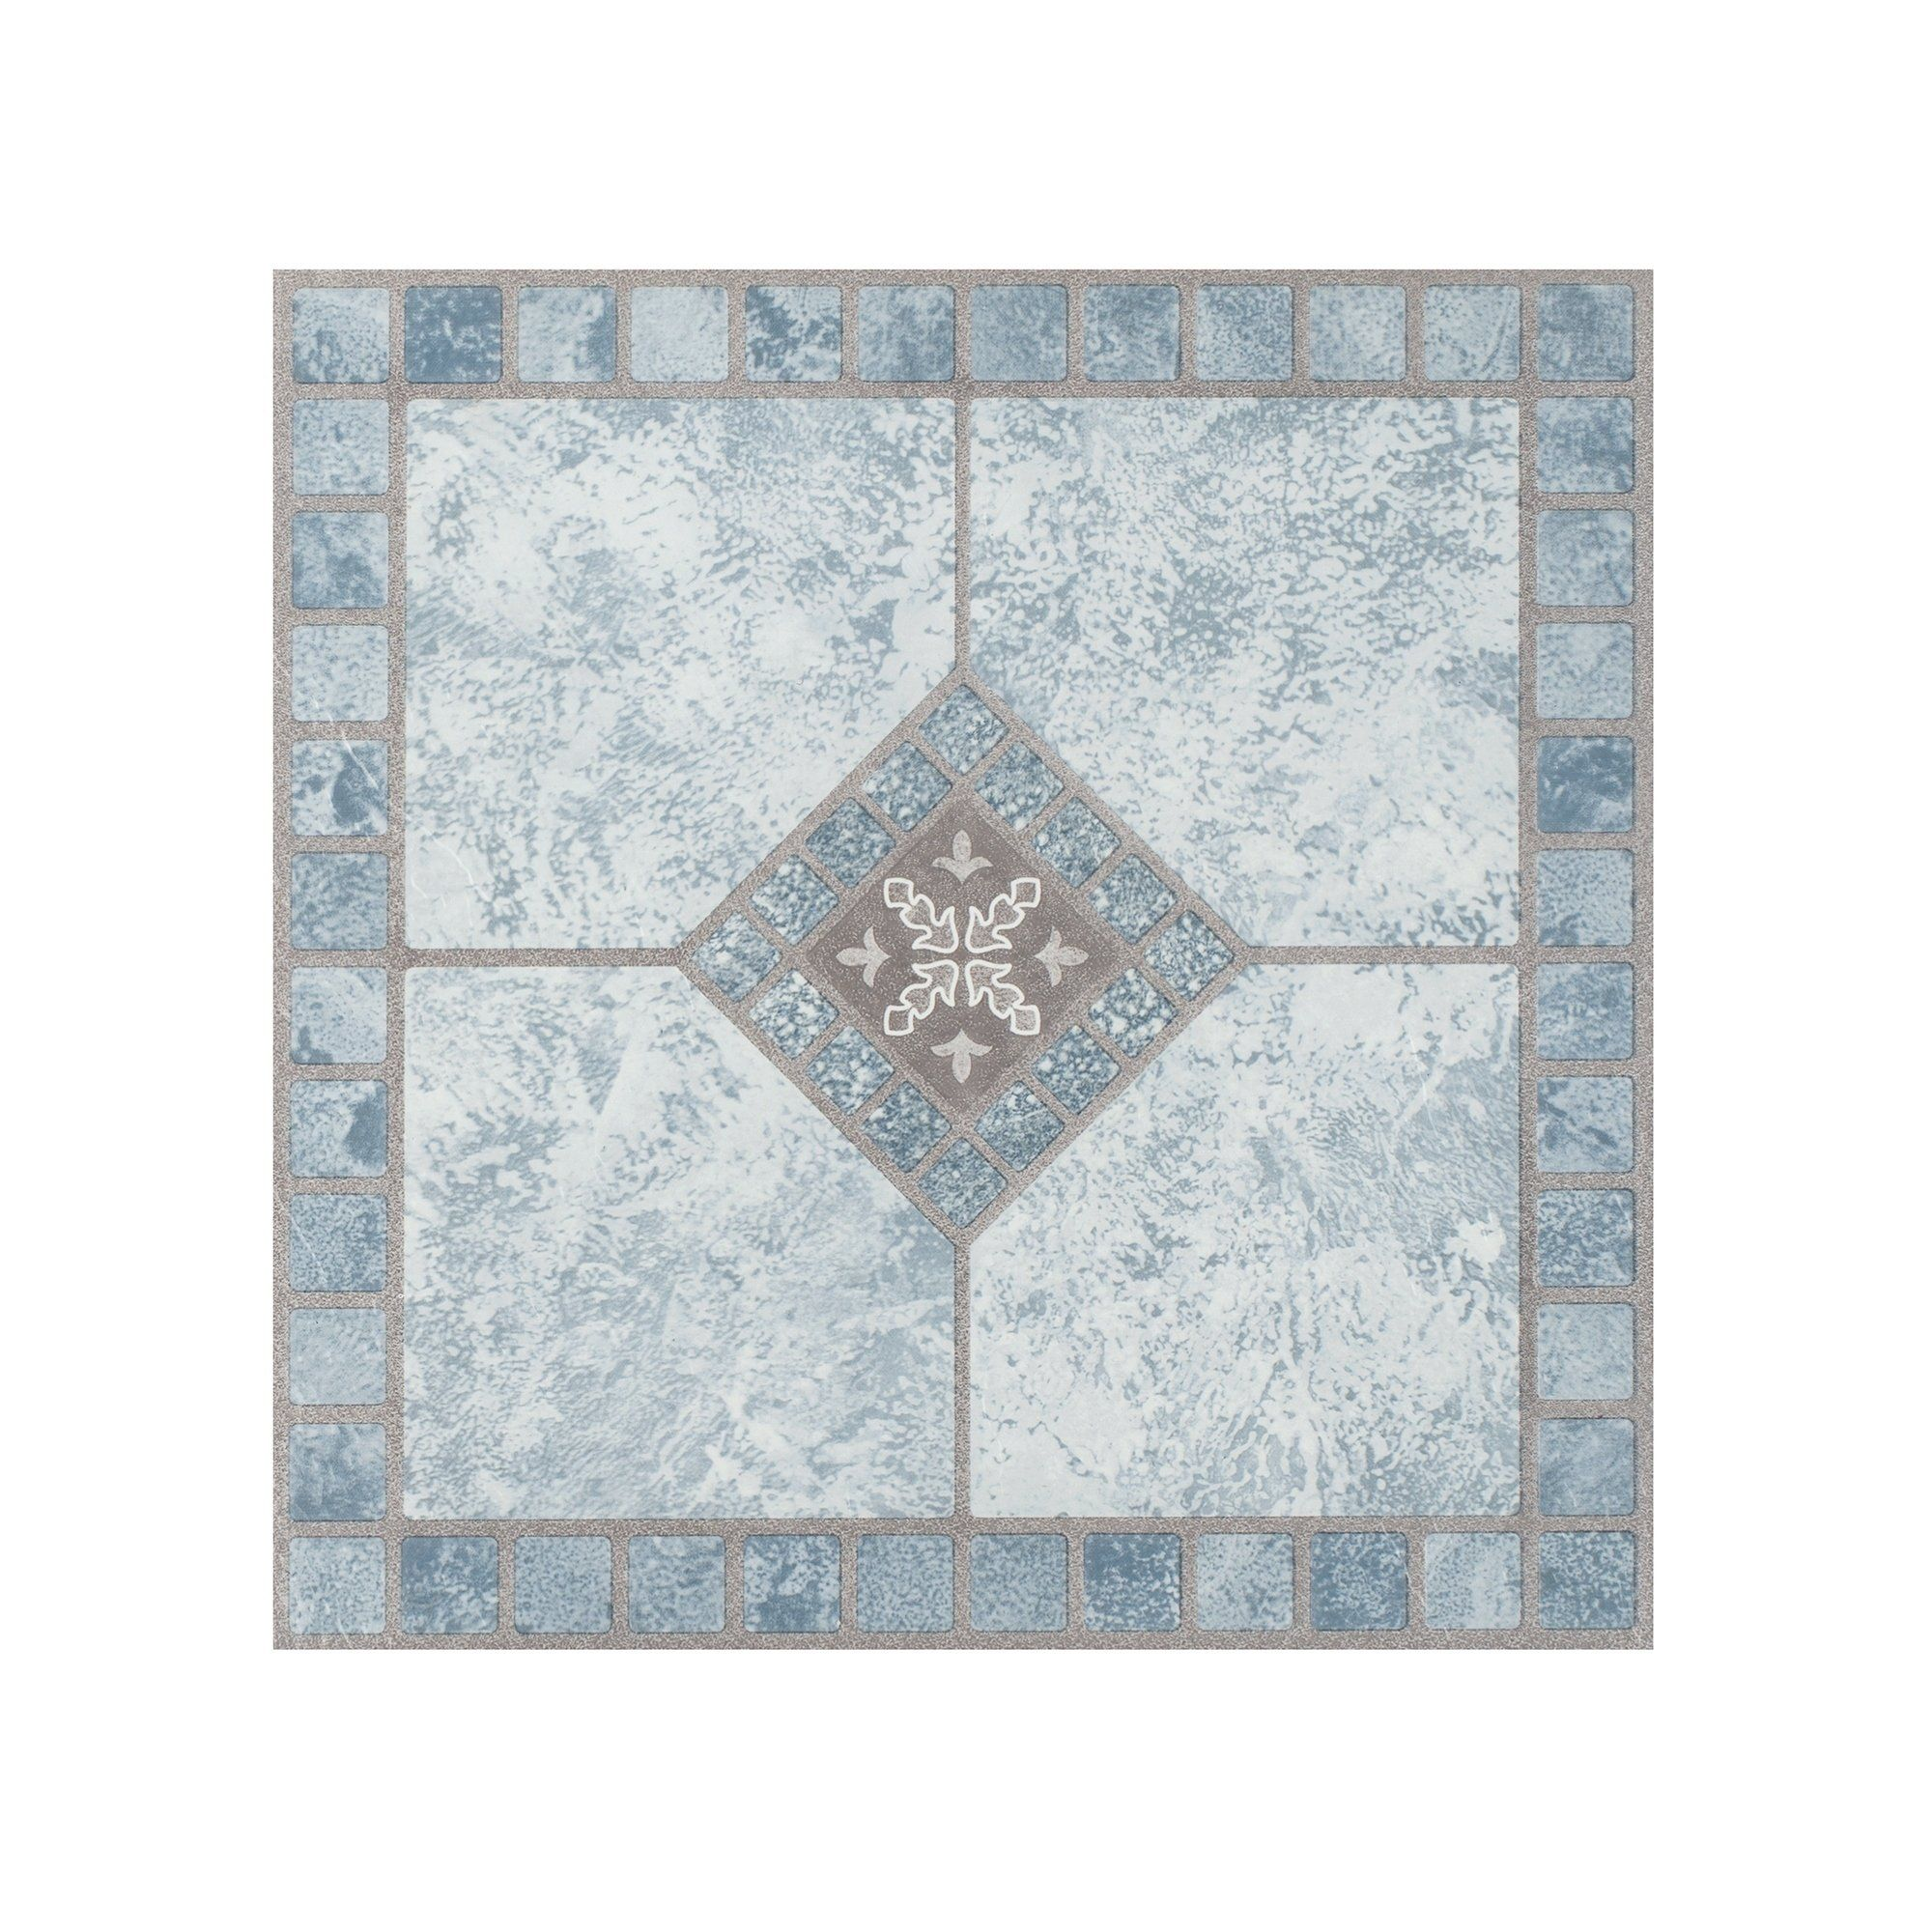 Portfolio 12x12 2 0mm Self Adhesive Vinyl Floor Tile Blue Diamond 9 Tiles 9 Sq Ft Achim Luxury Vinyl Tile Vinyl Tile Luxury Vinyl